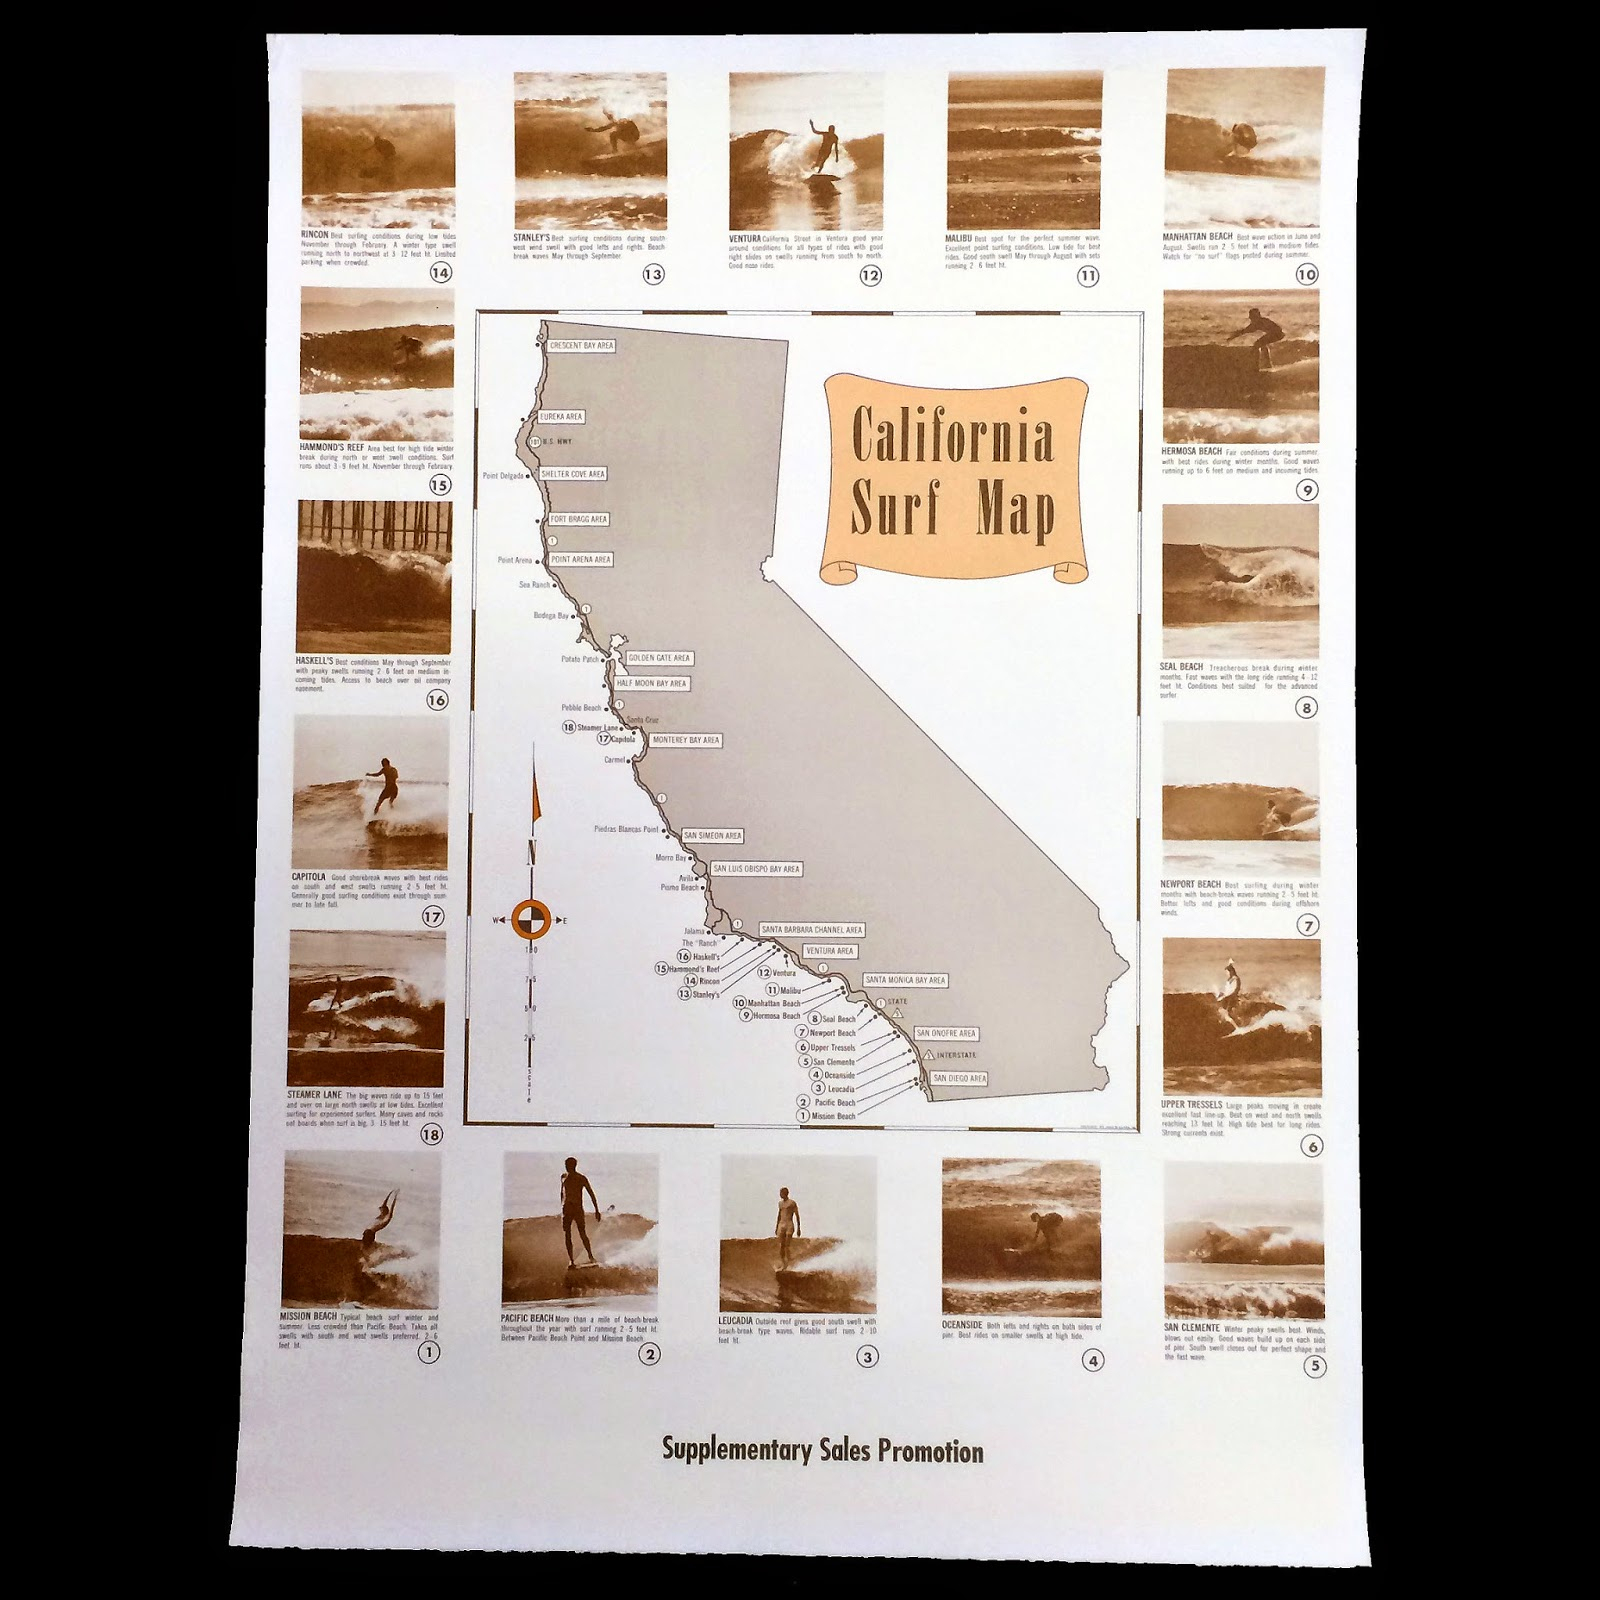 Surfing Heritage & Culture Center: Vintage Map Of California Surf Spots - Surf Spots In California Map